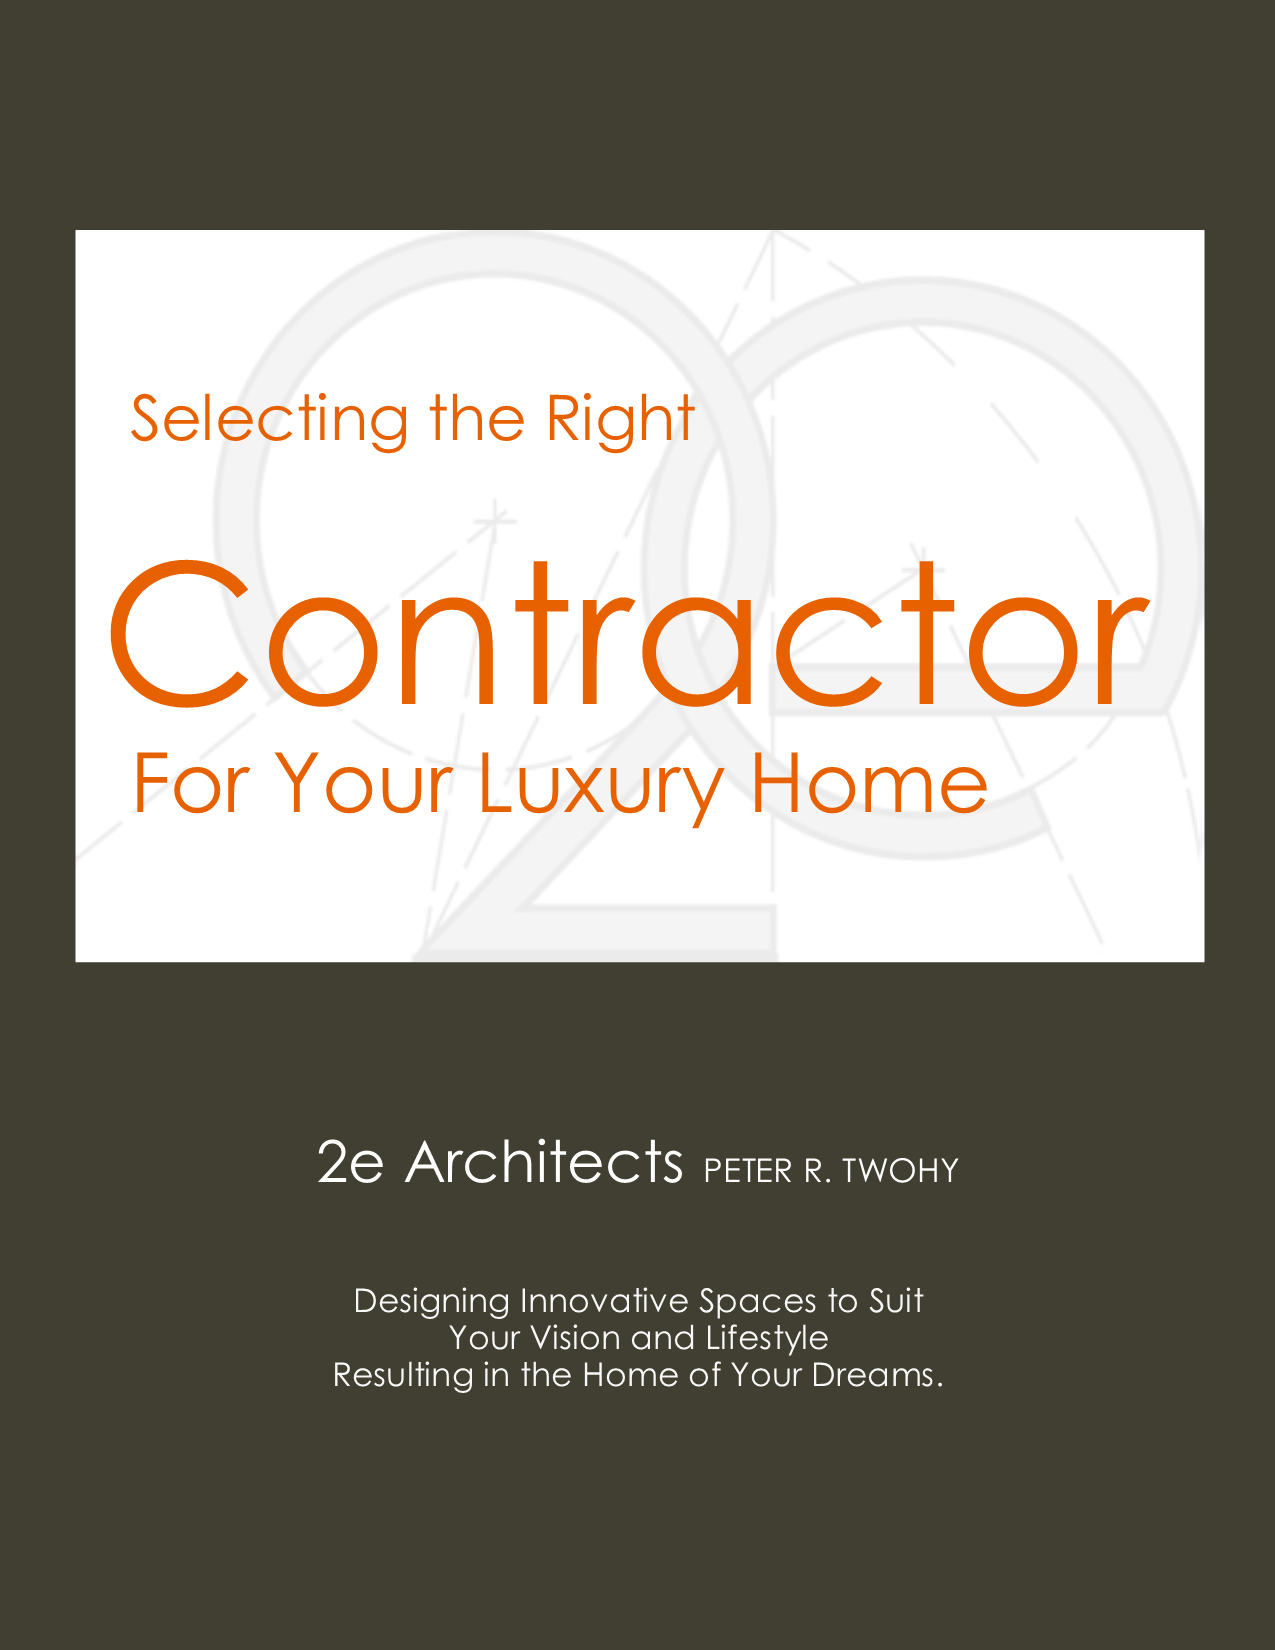 Selecting the Right Contractor for Your Luxury Home